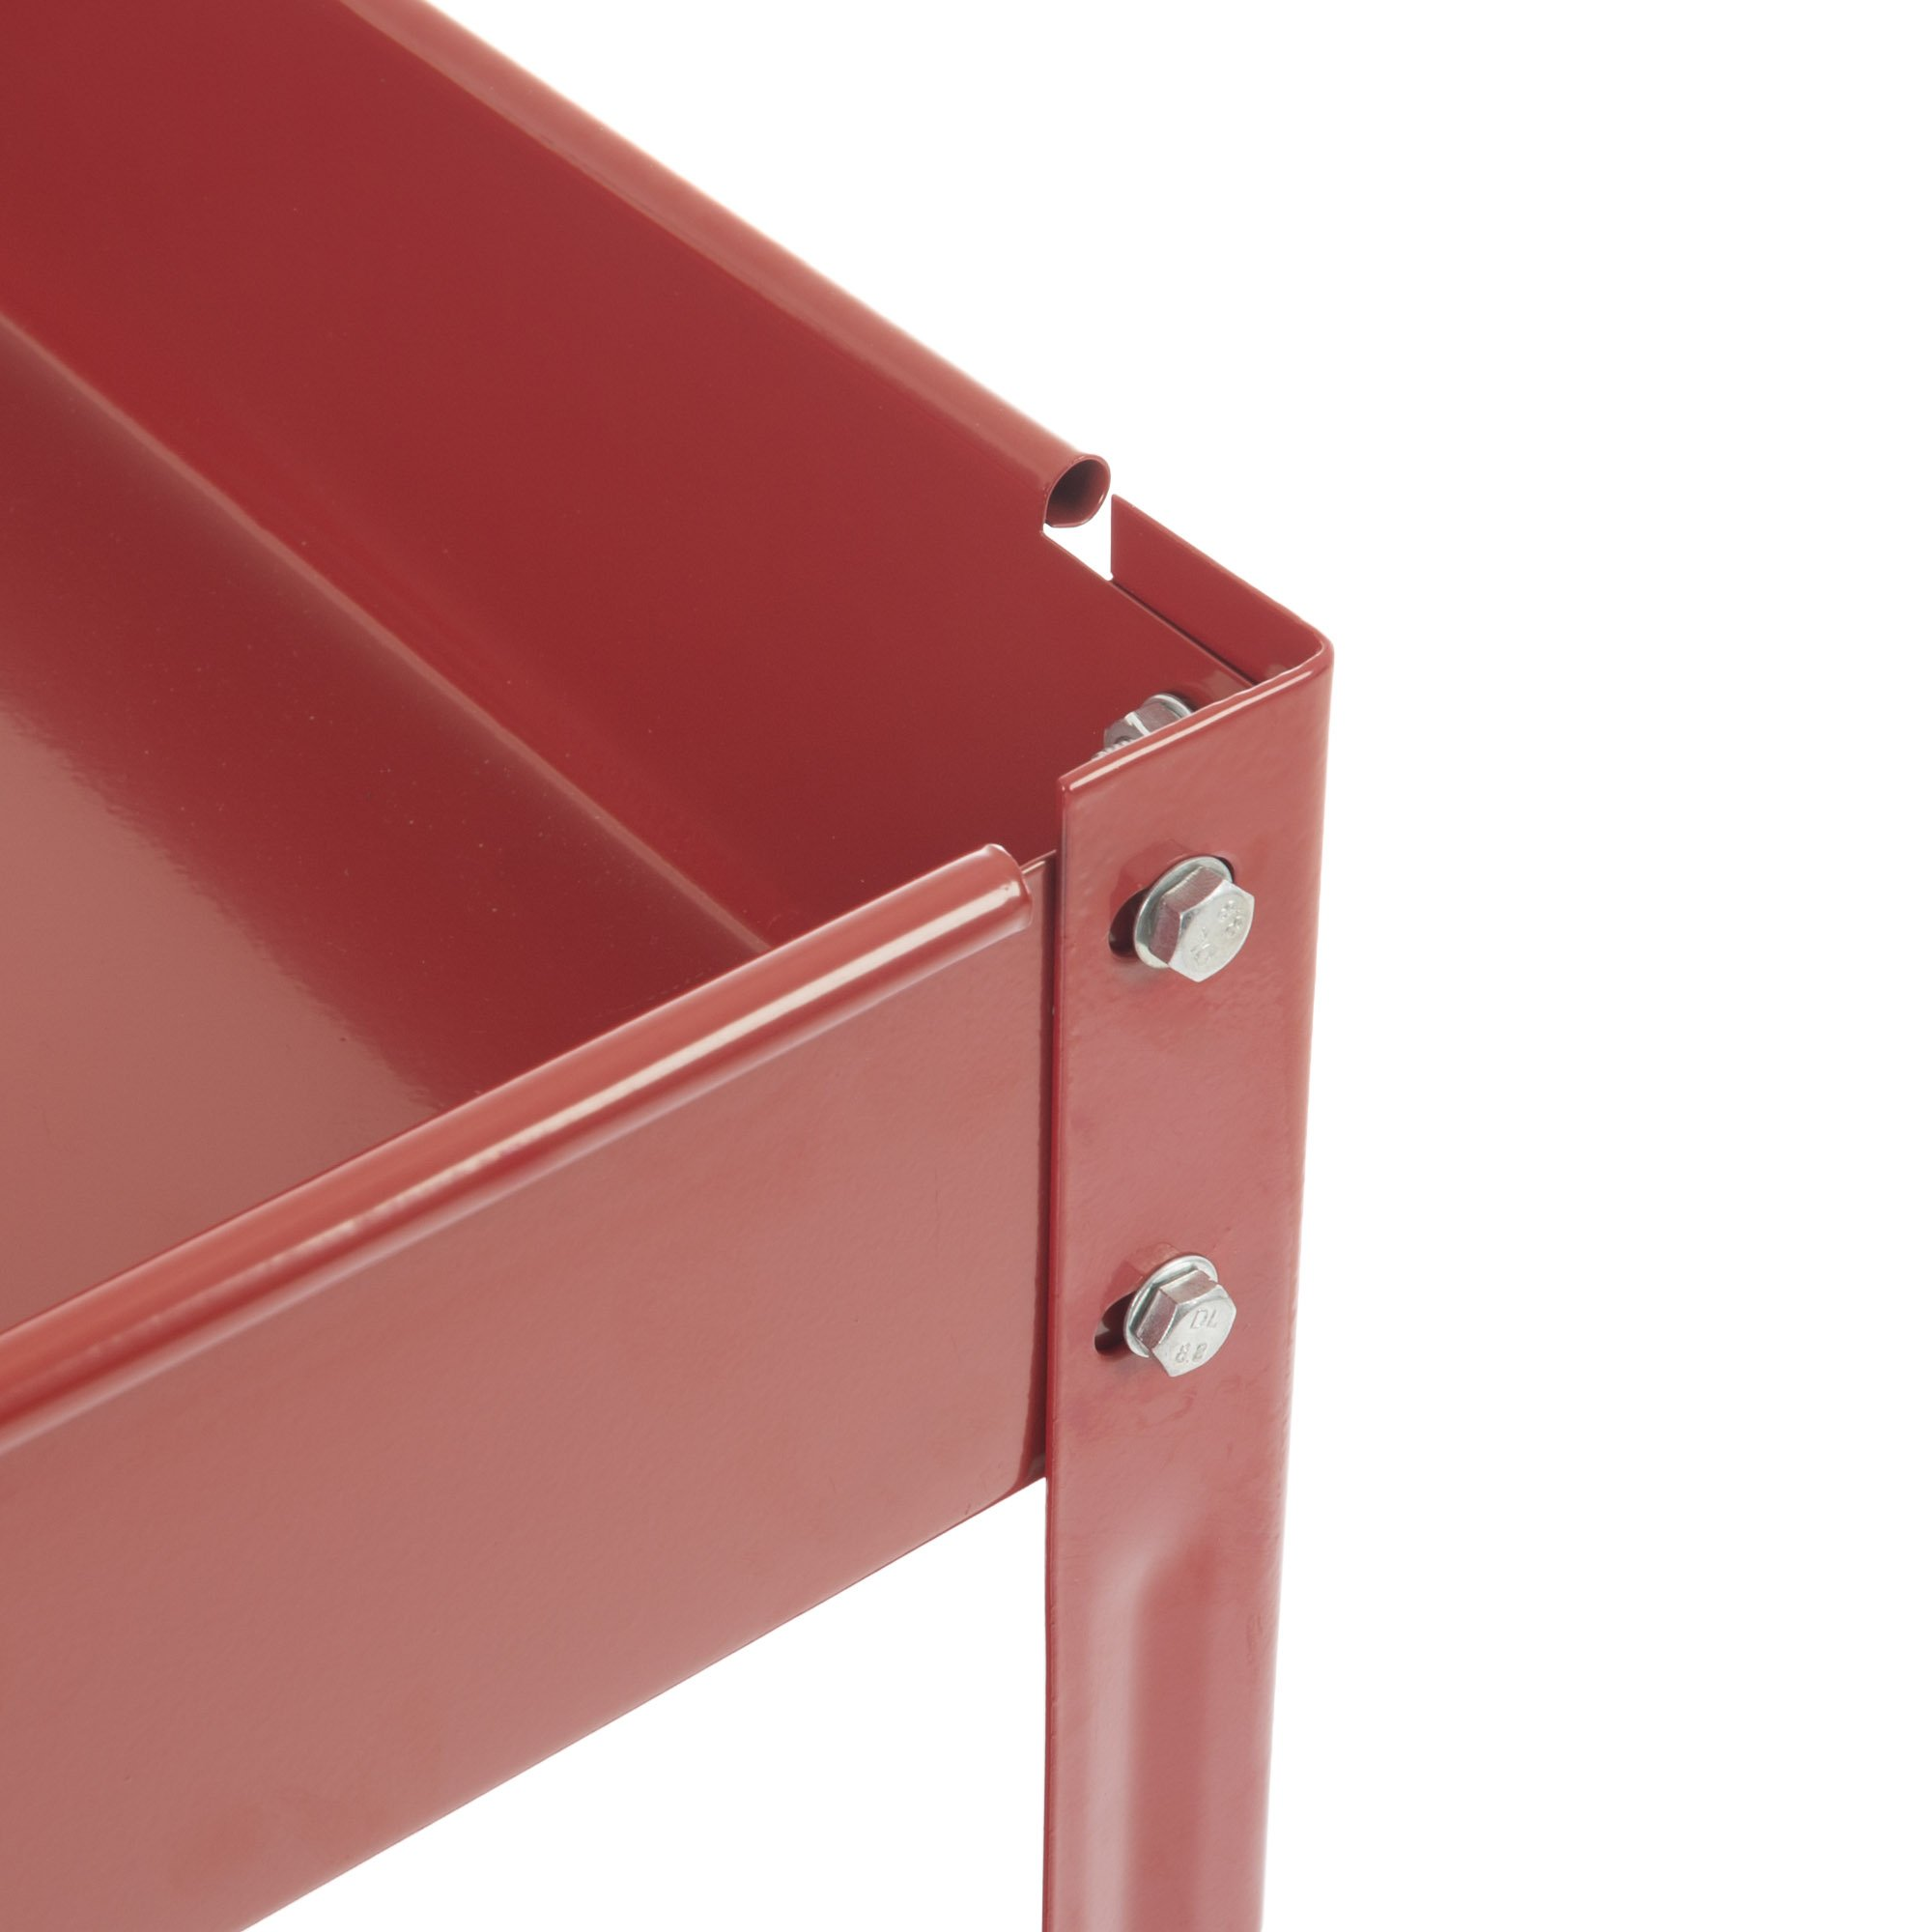 Metal Service Utility Cart, Heavy Duty Supply Cart with Two Storage Tray Shelves- 330 lbs Capacity By Stalwart (Red) by Stalwart (Image #3)